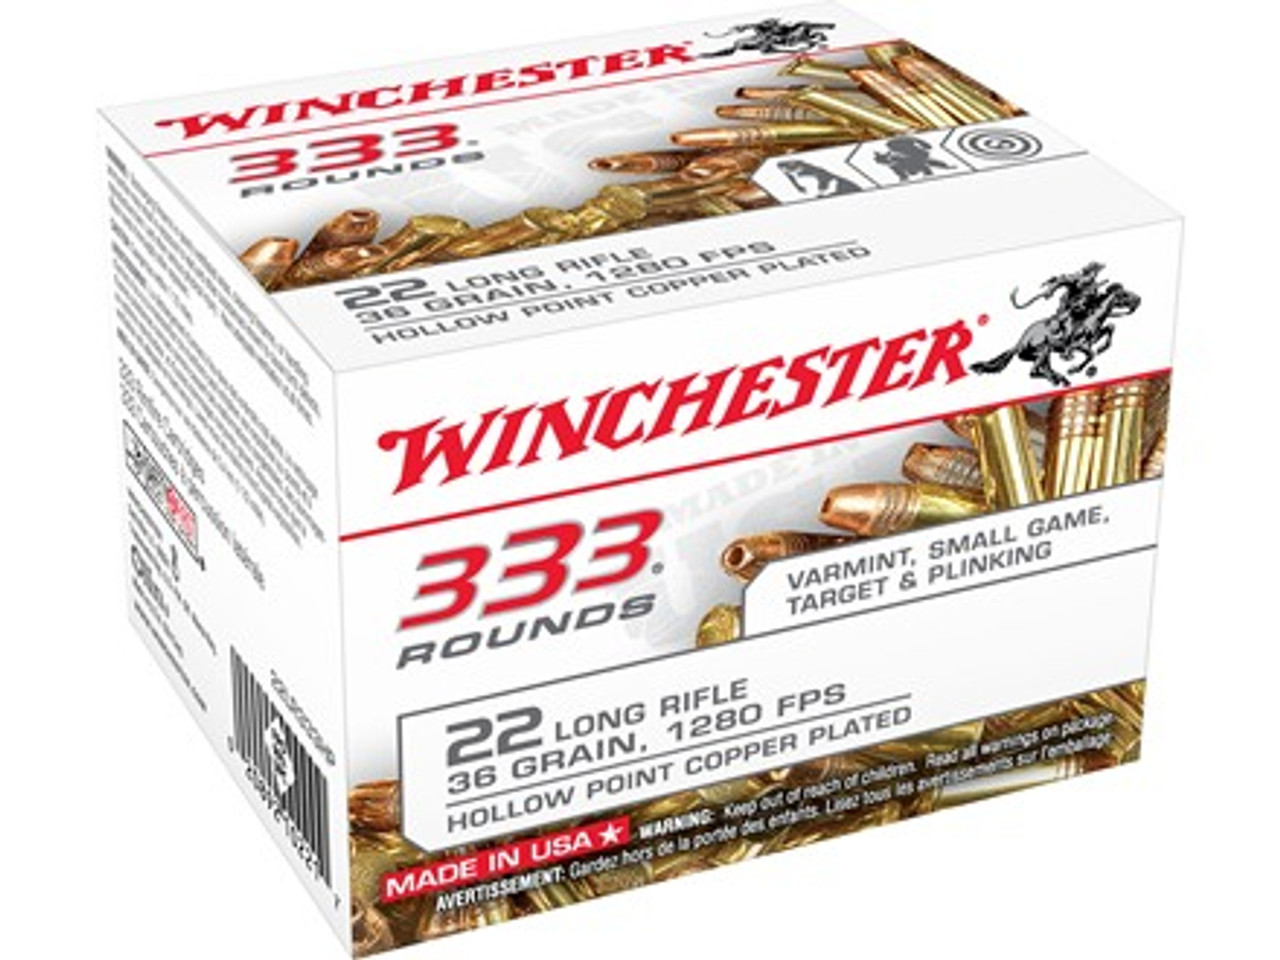 Winchester 22LR Plated Lead Hollow Point, Box of 333